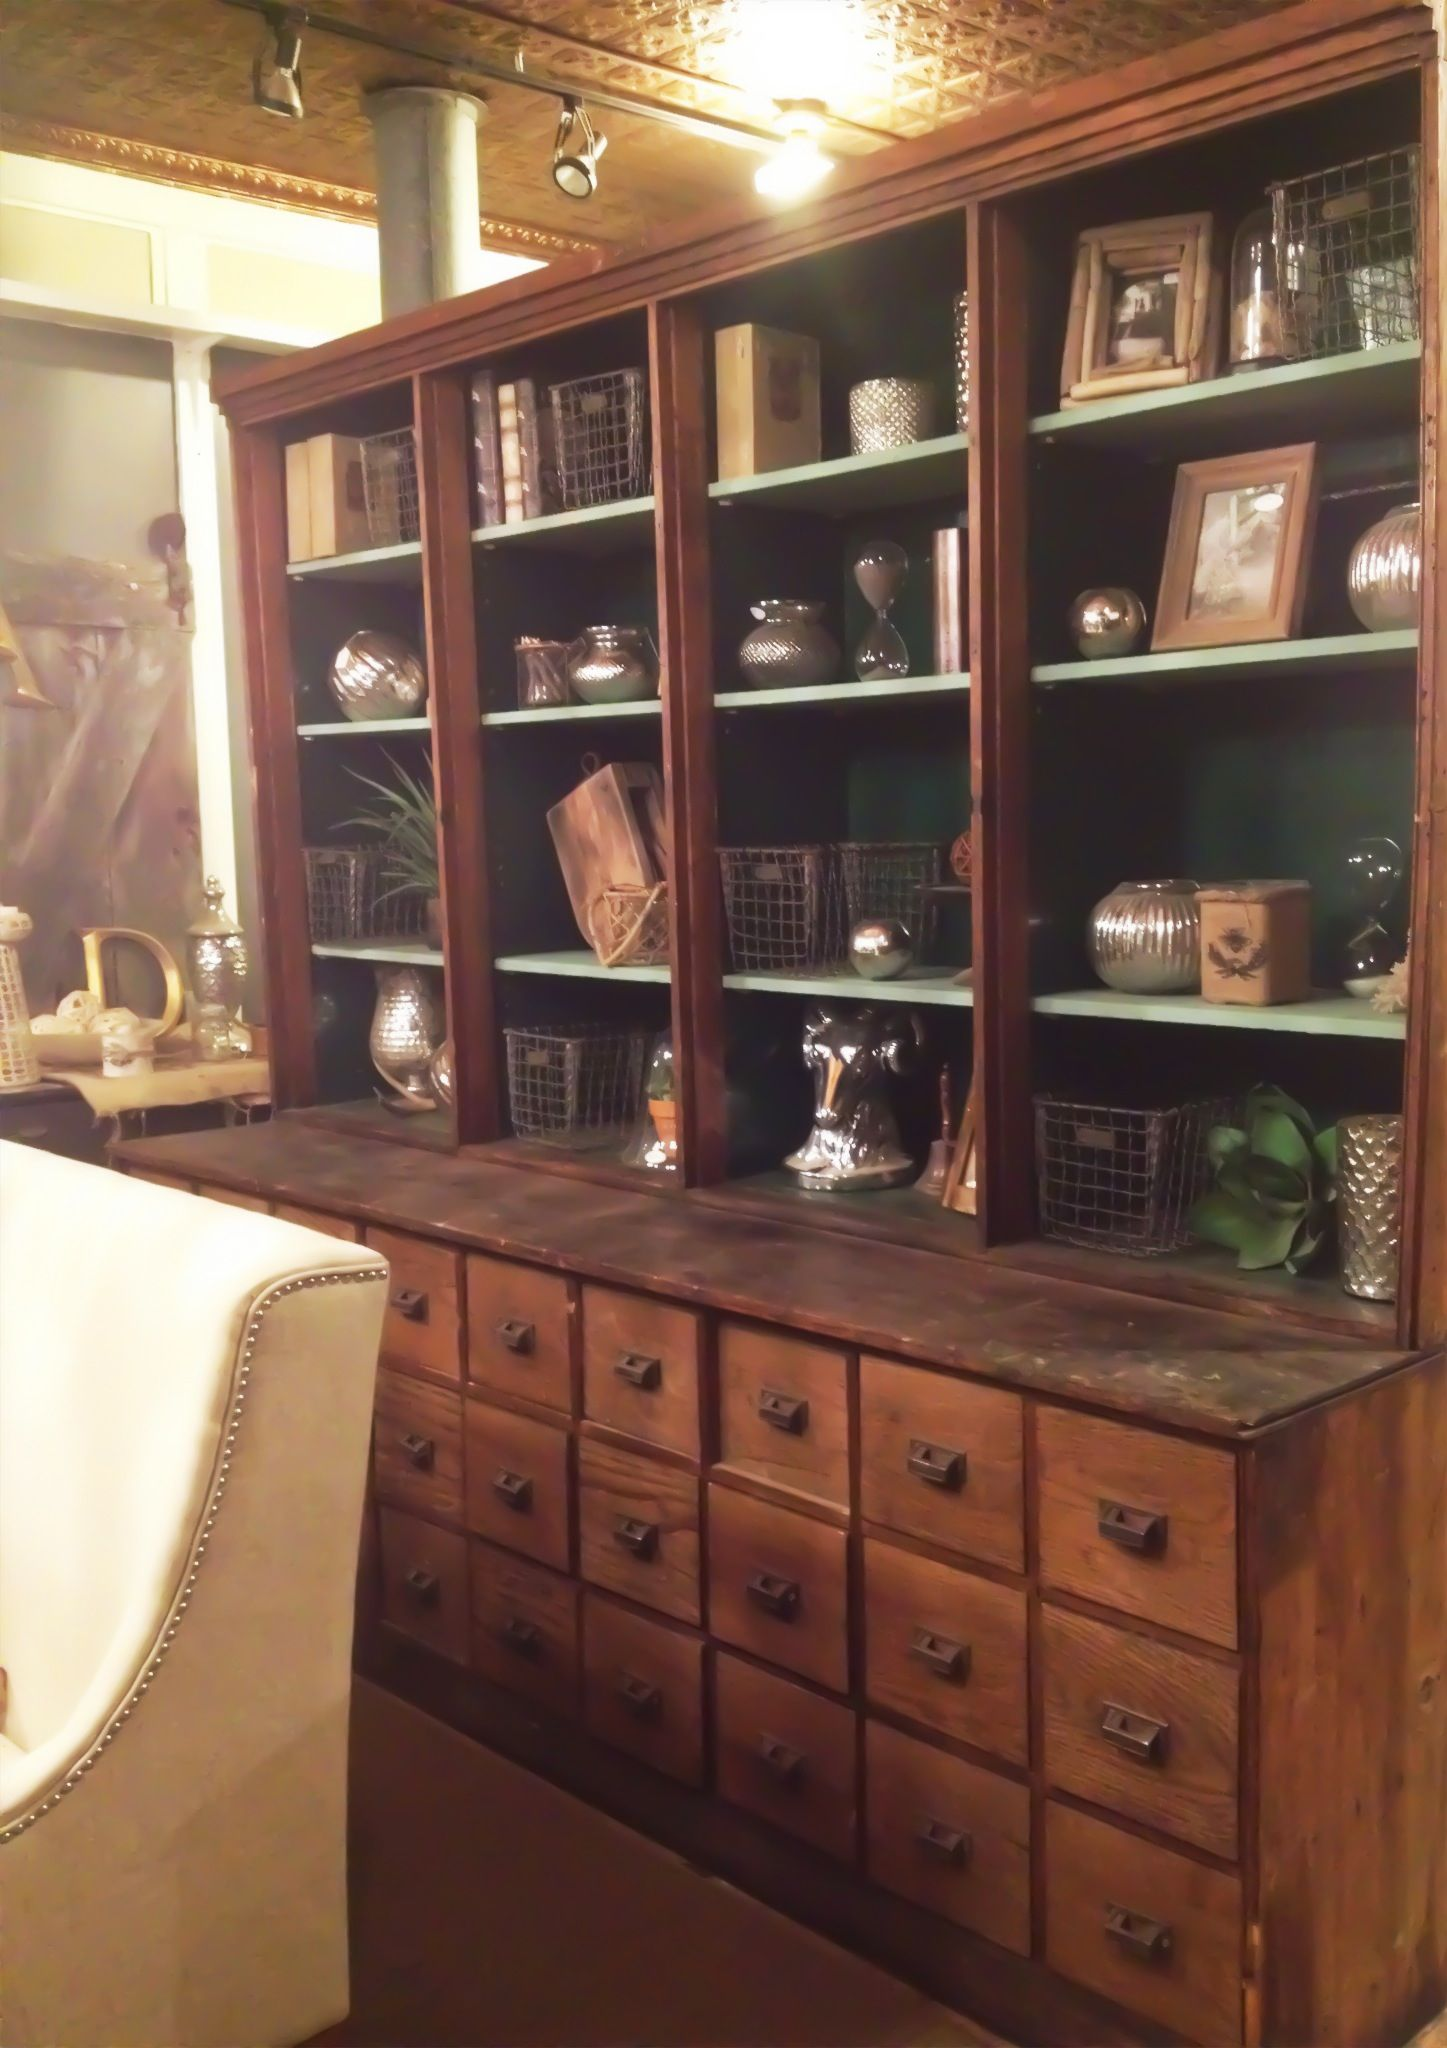 Vintage Kitchen Cabinets For Sale Island With Sink And Stove Top Antique Pharmacy Apothecary Cabinet Available